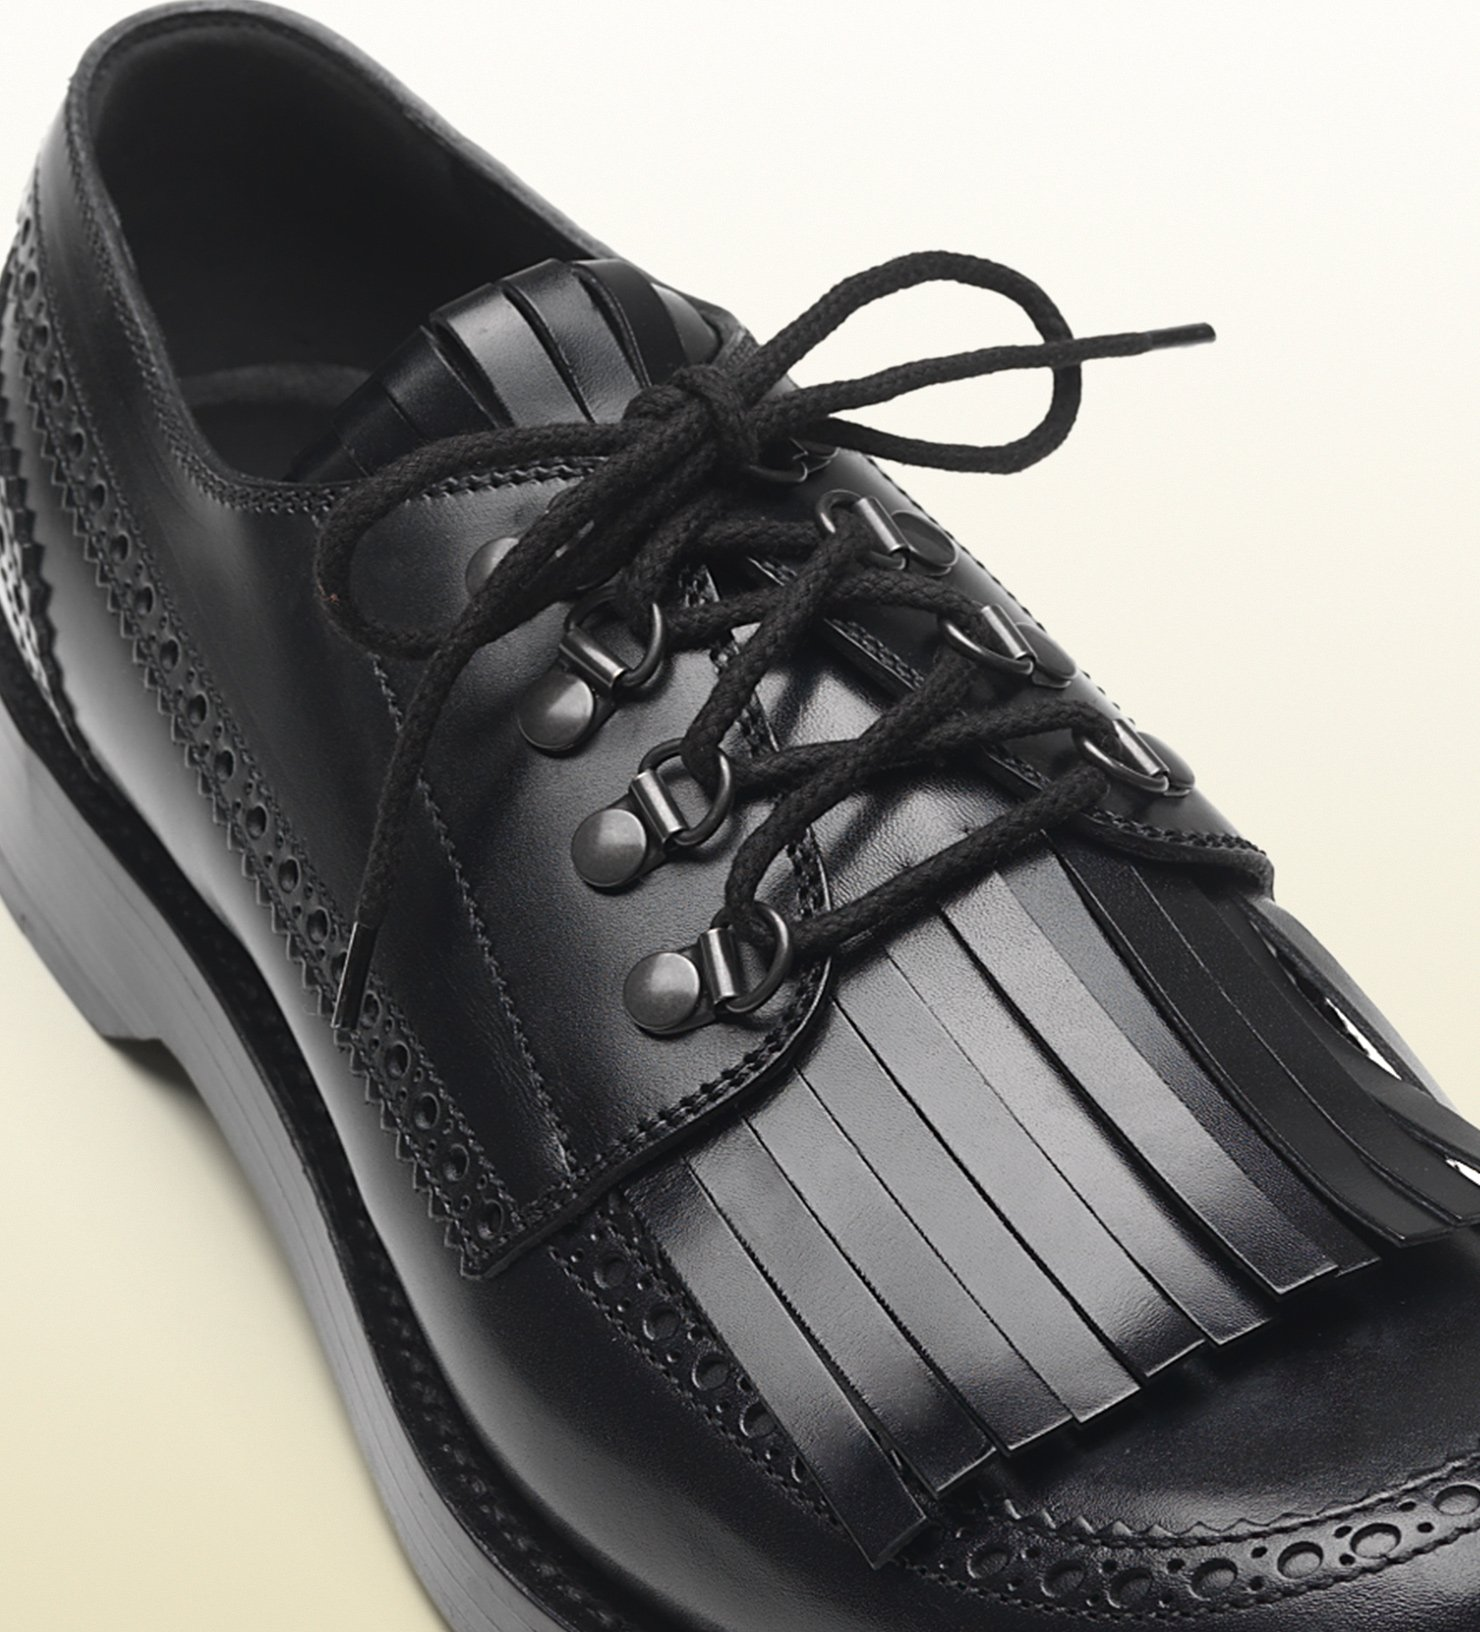 Lyst Gucci Leather Fringed Brogue Lace Up Shoe In Black